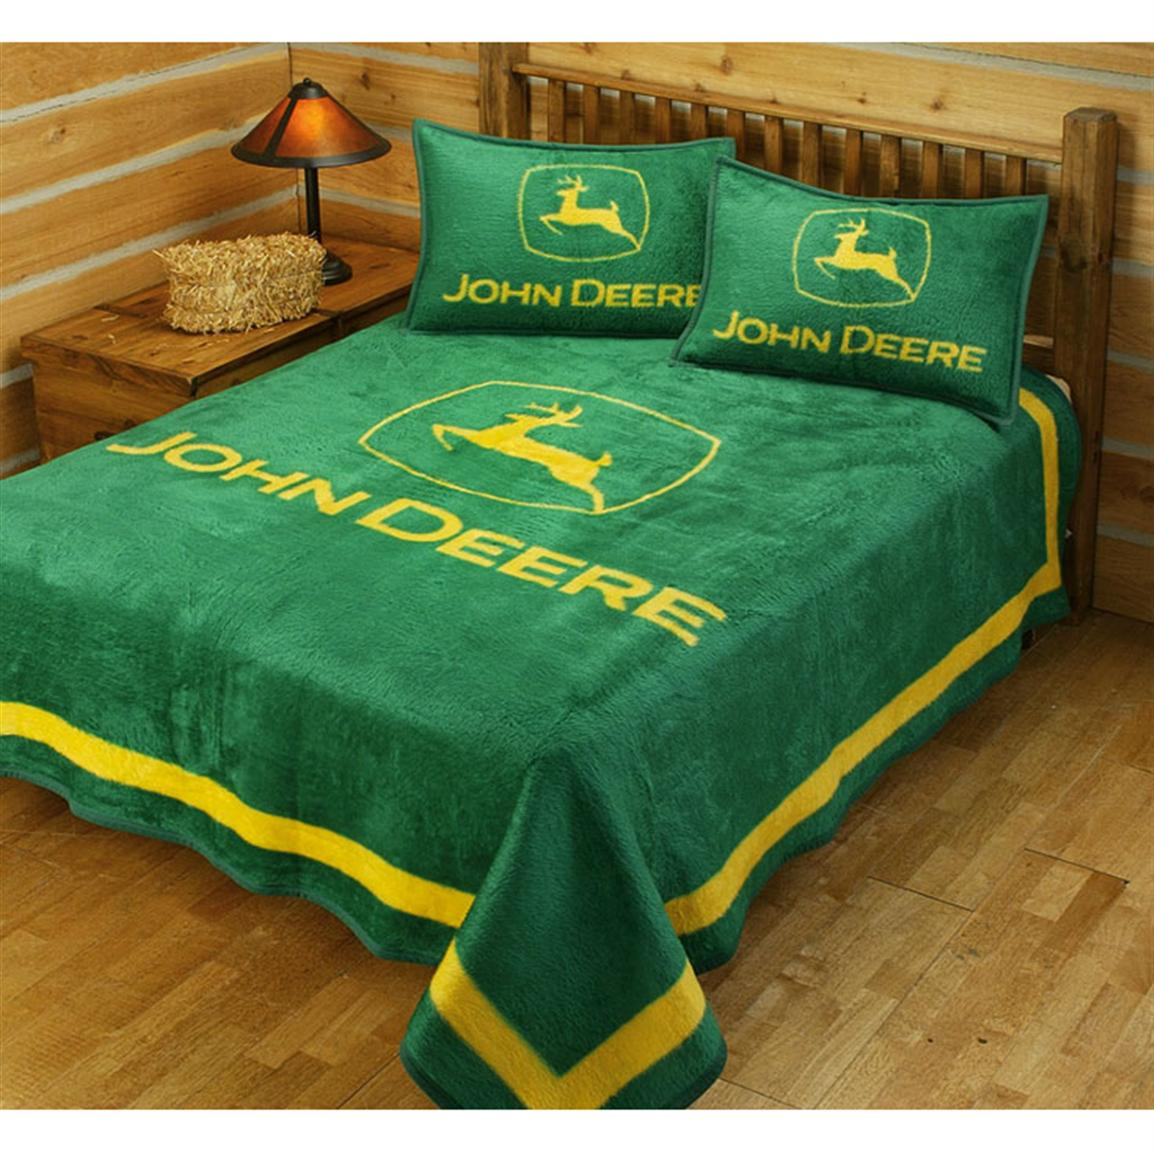 John Deere Bedroom Ideas | John Deere Tractor Bunk Bed | John Deere Bedding